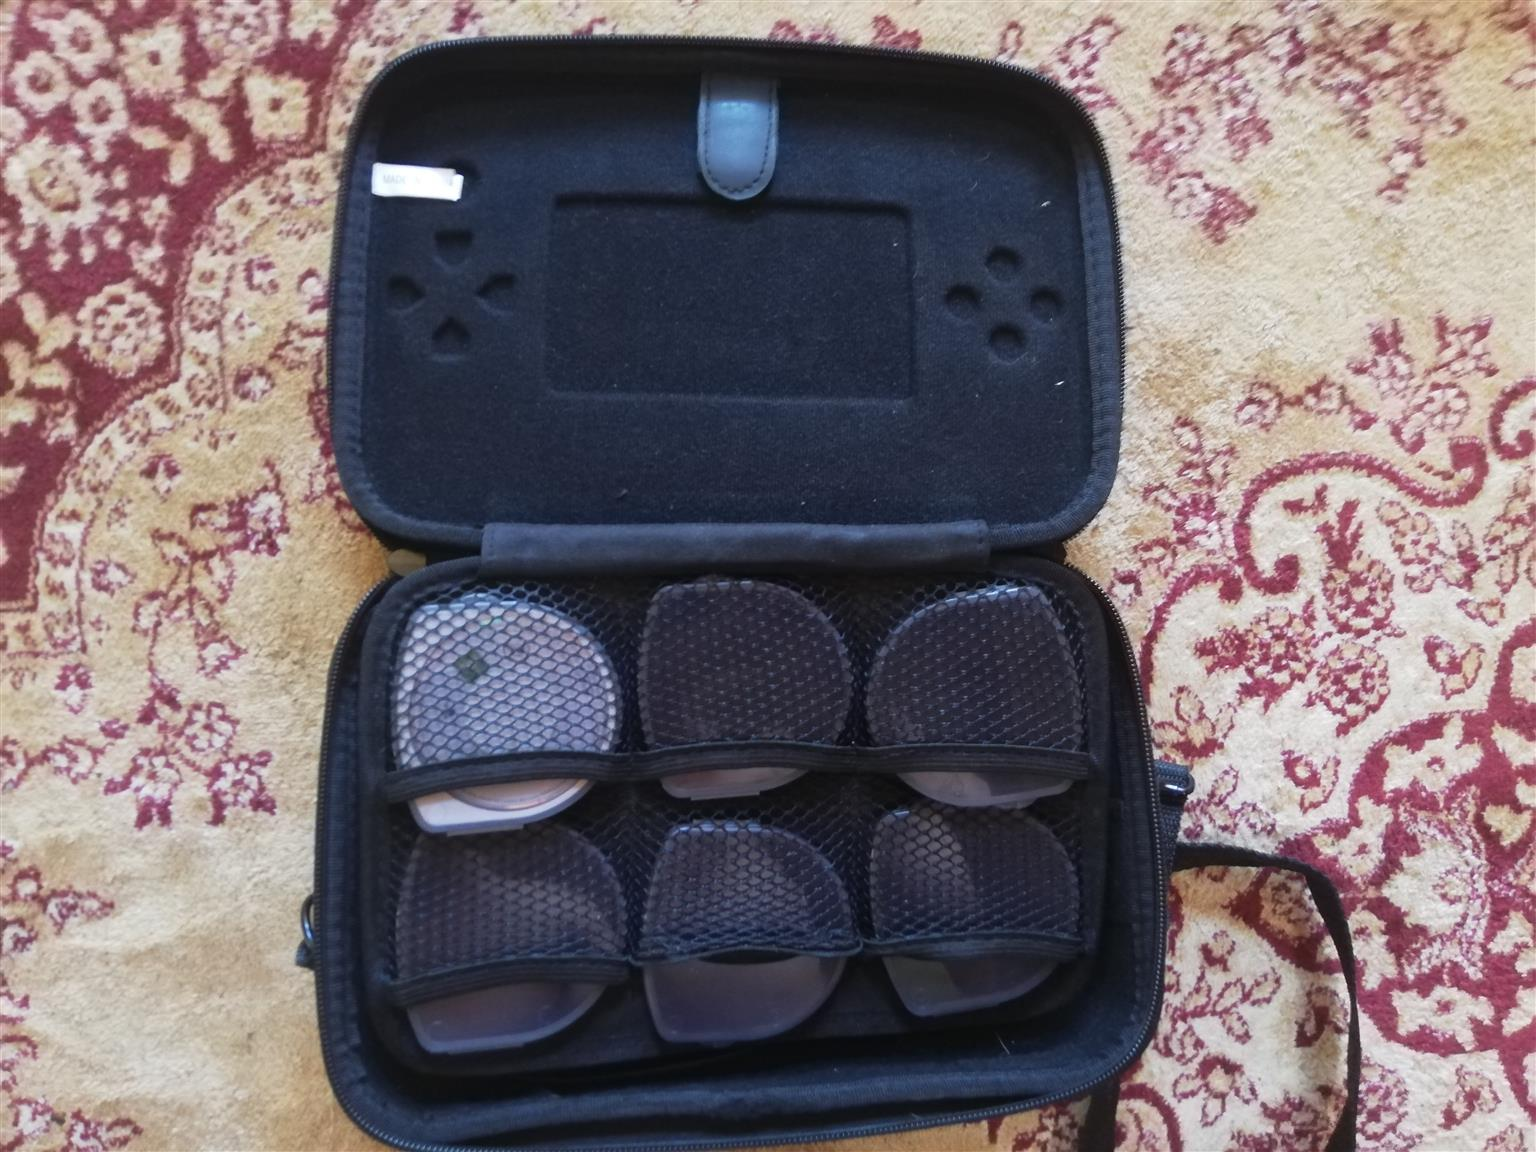 PSP console with PSP camera, carrying bag and Several Games